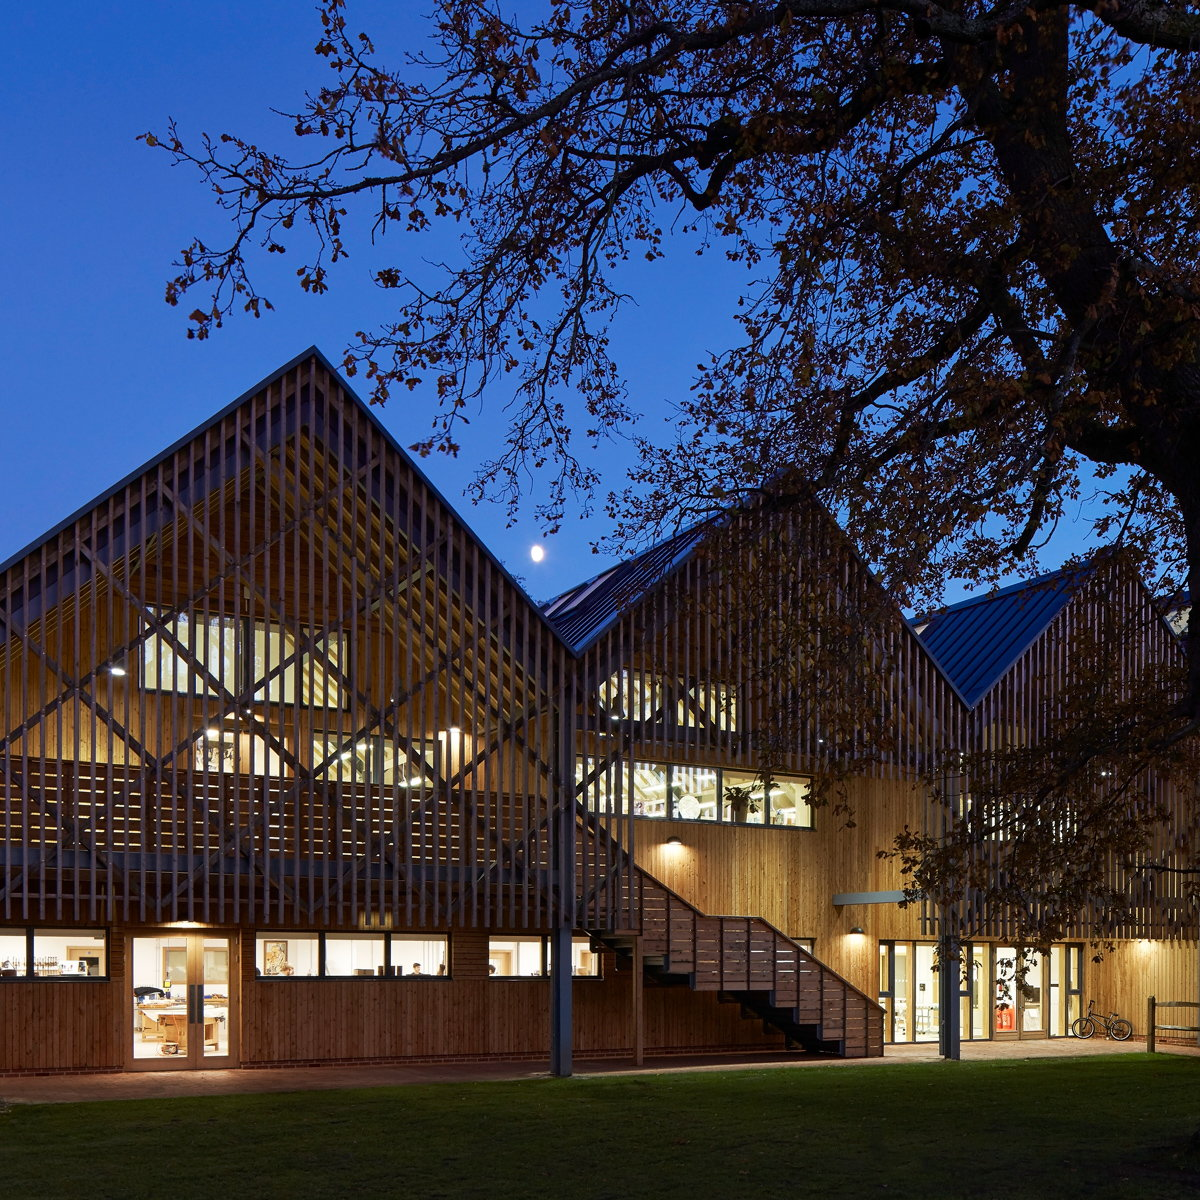 Bedales School Art and Design Building Wins 2017 RIBA National Award